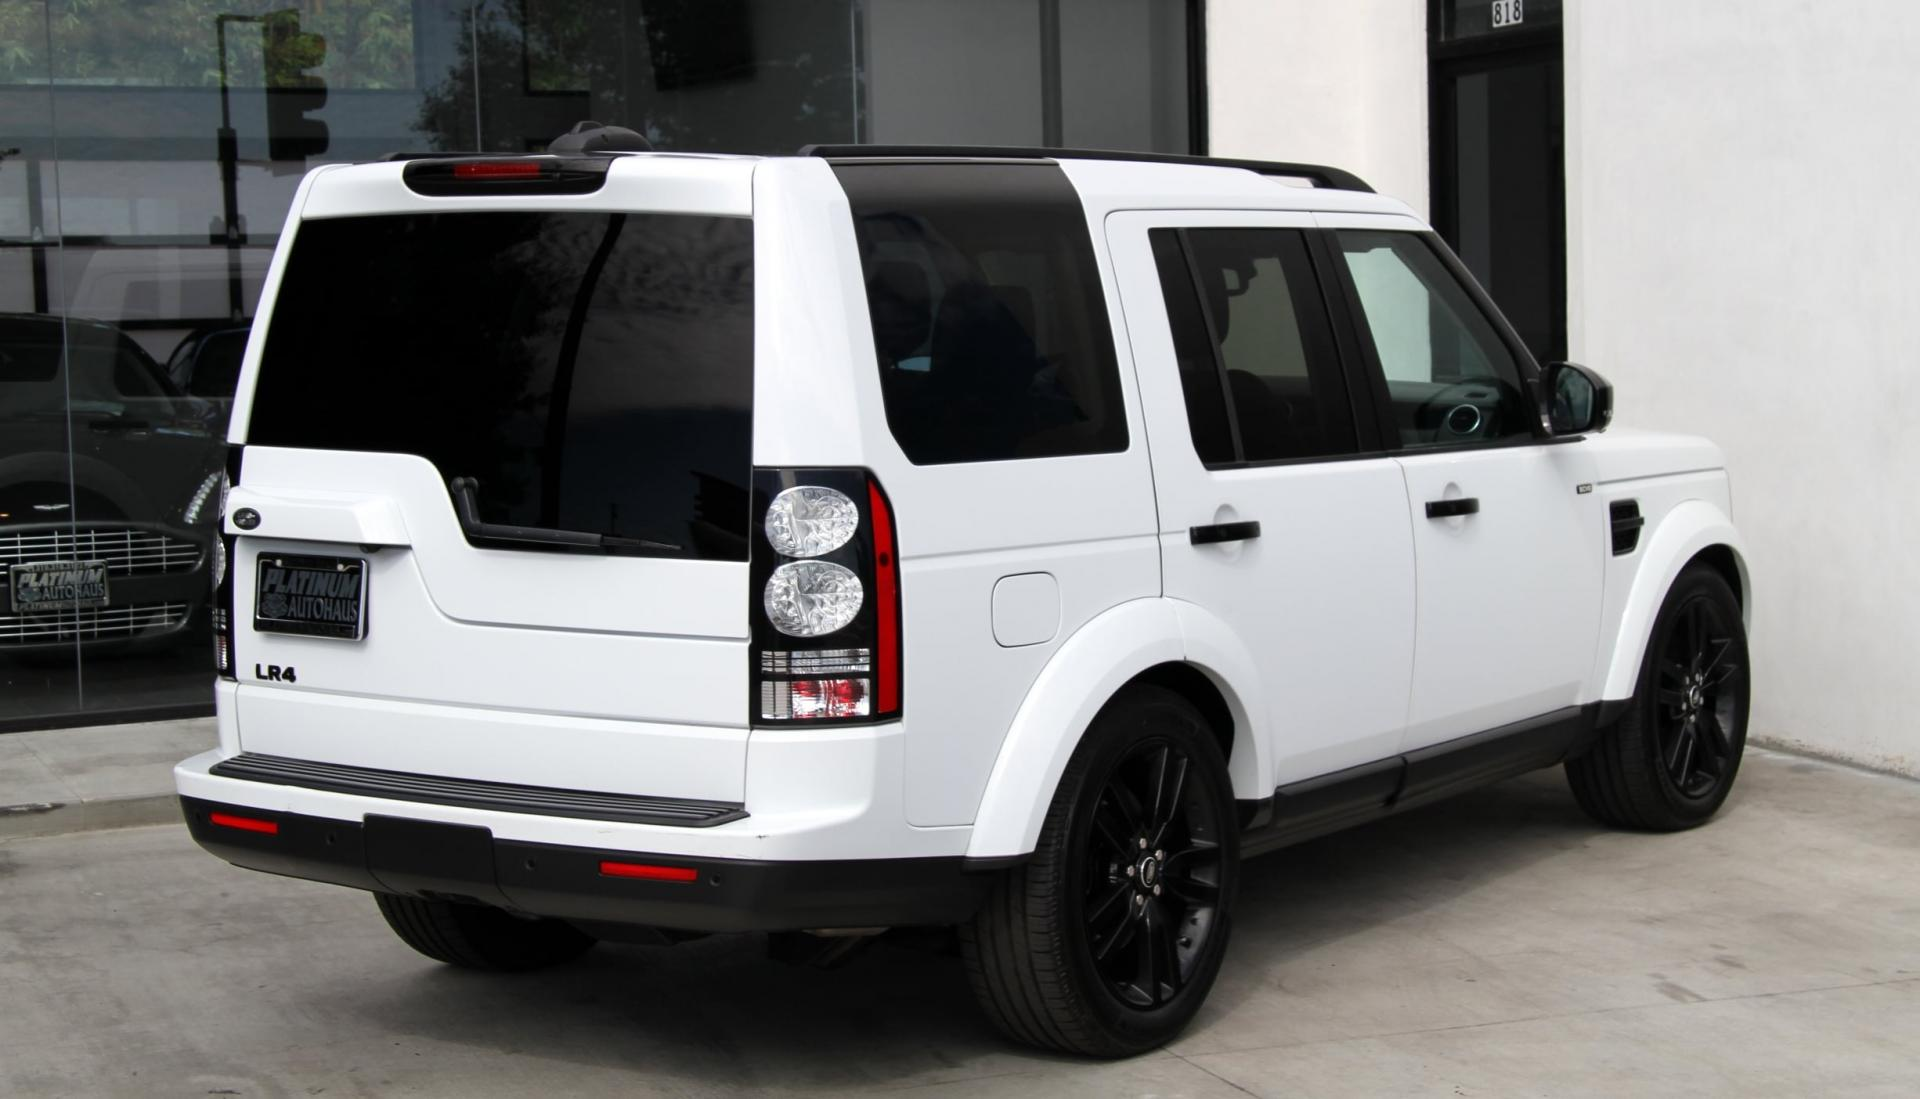 2014 land rover lr4 hse black design package stock 5988 for sale near redondo beach ca - Land rover garage near me ...